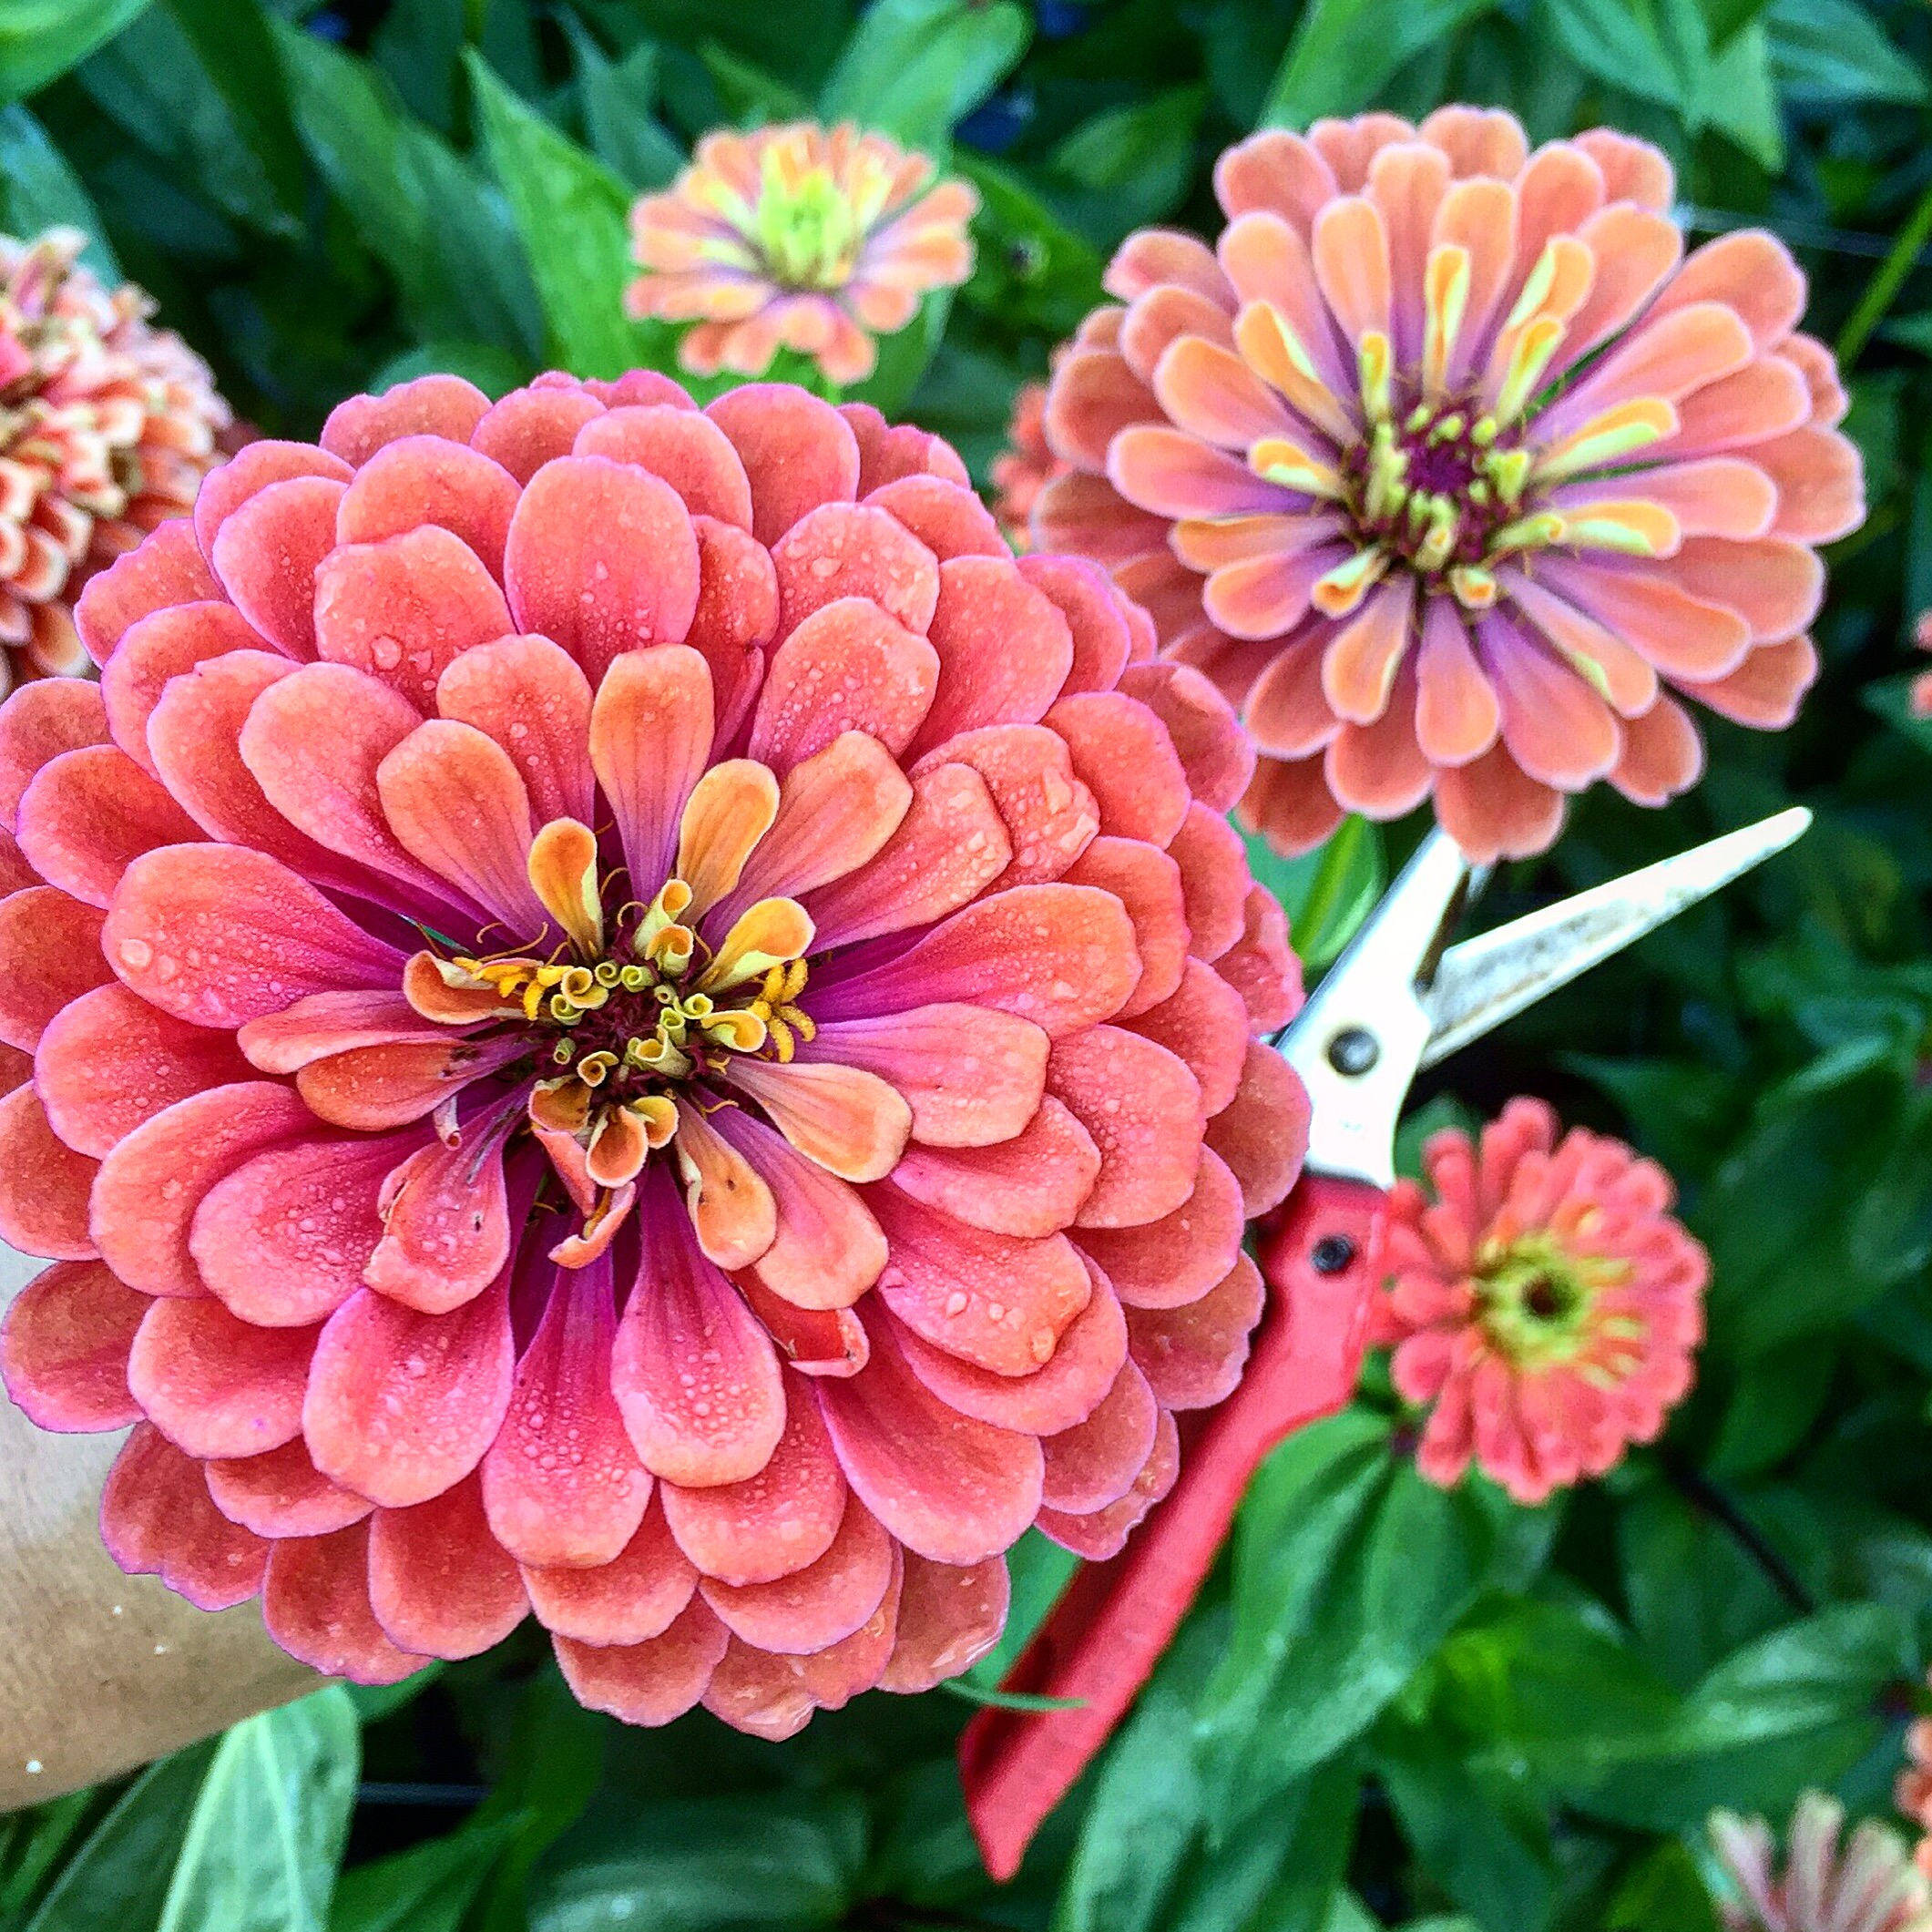 Benary's Giant Salmon Rose Zinnia - Zinnias are quite possibly the happiest flower that I can think of and this 'Salmon Rose' color just feels like summer. Plus they love the heat! Once your plants begin to flower, cut them deeply to encourage longer stems and more branching. To pick them at the proper stage, wiggle the stems just under the head of the flower - if they are floppy and very wiggly, wait another day or so. If the stem is firm, they're ready to cut! Zinnias are susceptible to powdery mildew (especially if you're in the hot, humid south) so I recommend sowing one round of plants now and another about a month later. These large zinnias will be the perfect focal flower in your summer bouquet.